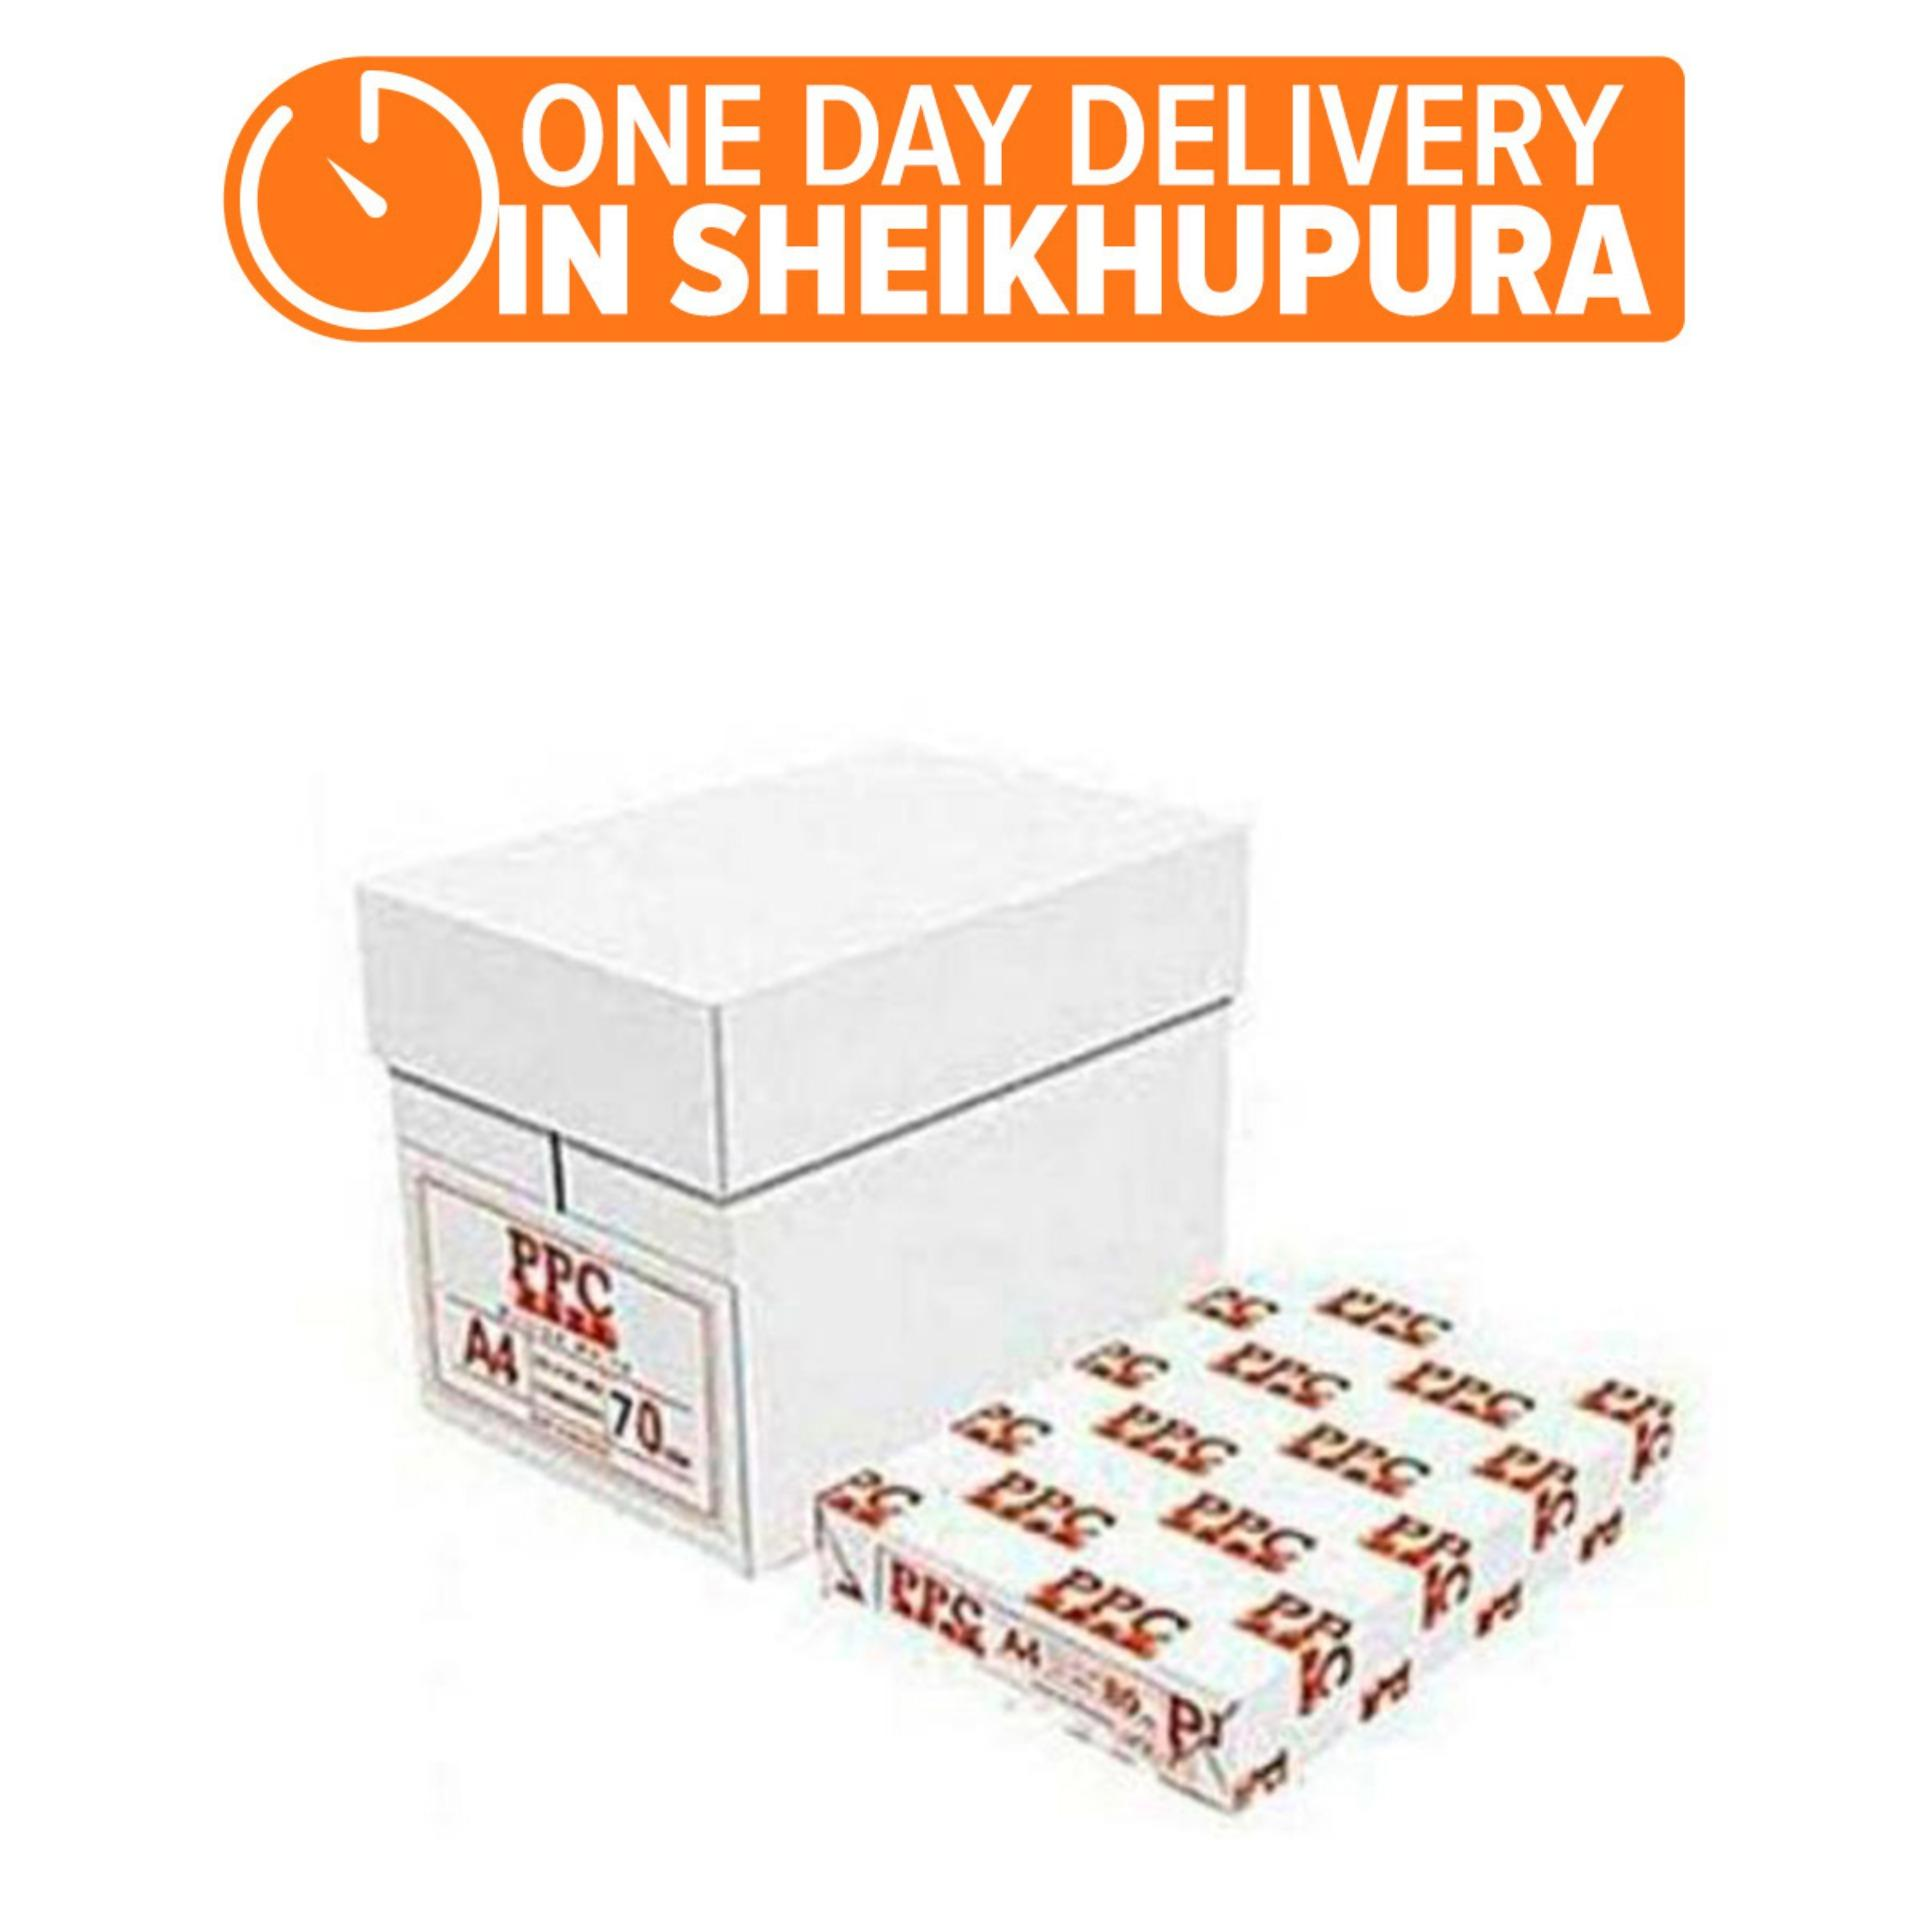 Plain Paper Copier - PPC 70GSM A4 Photocopy Paper - Box of 5 Reams (One Day  Delivery in Sheikhupura)